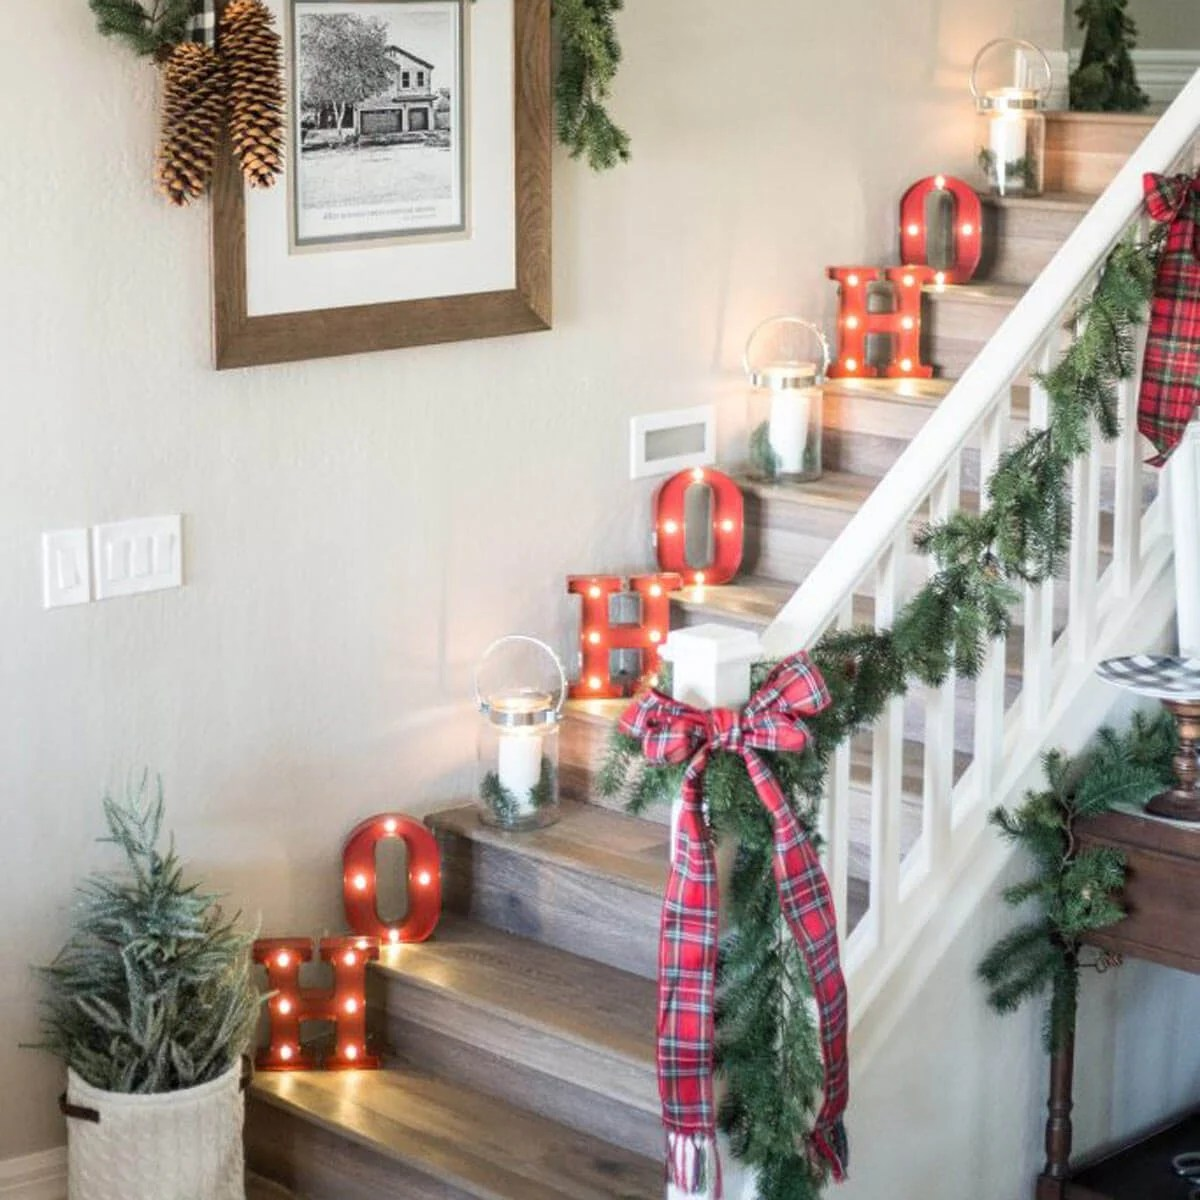 29 Ideas For Holiday Decor In Every Room The Family Handyman